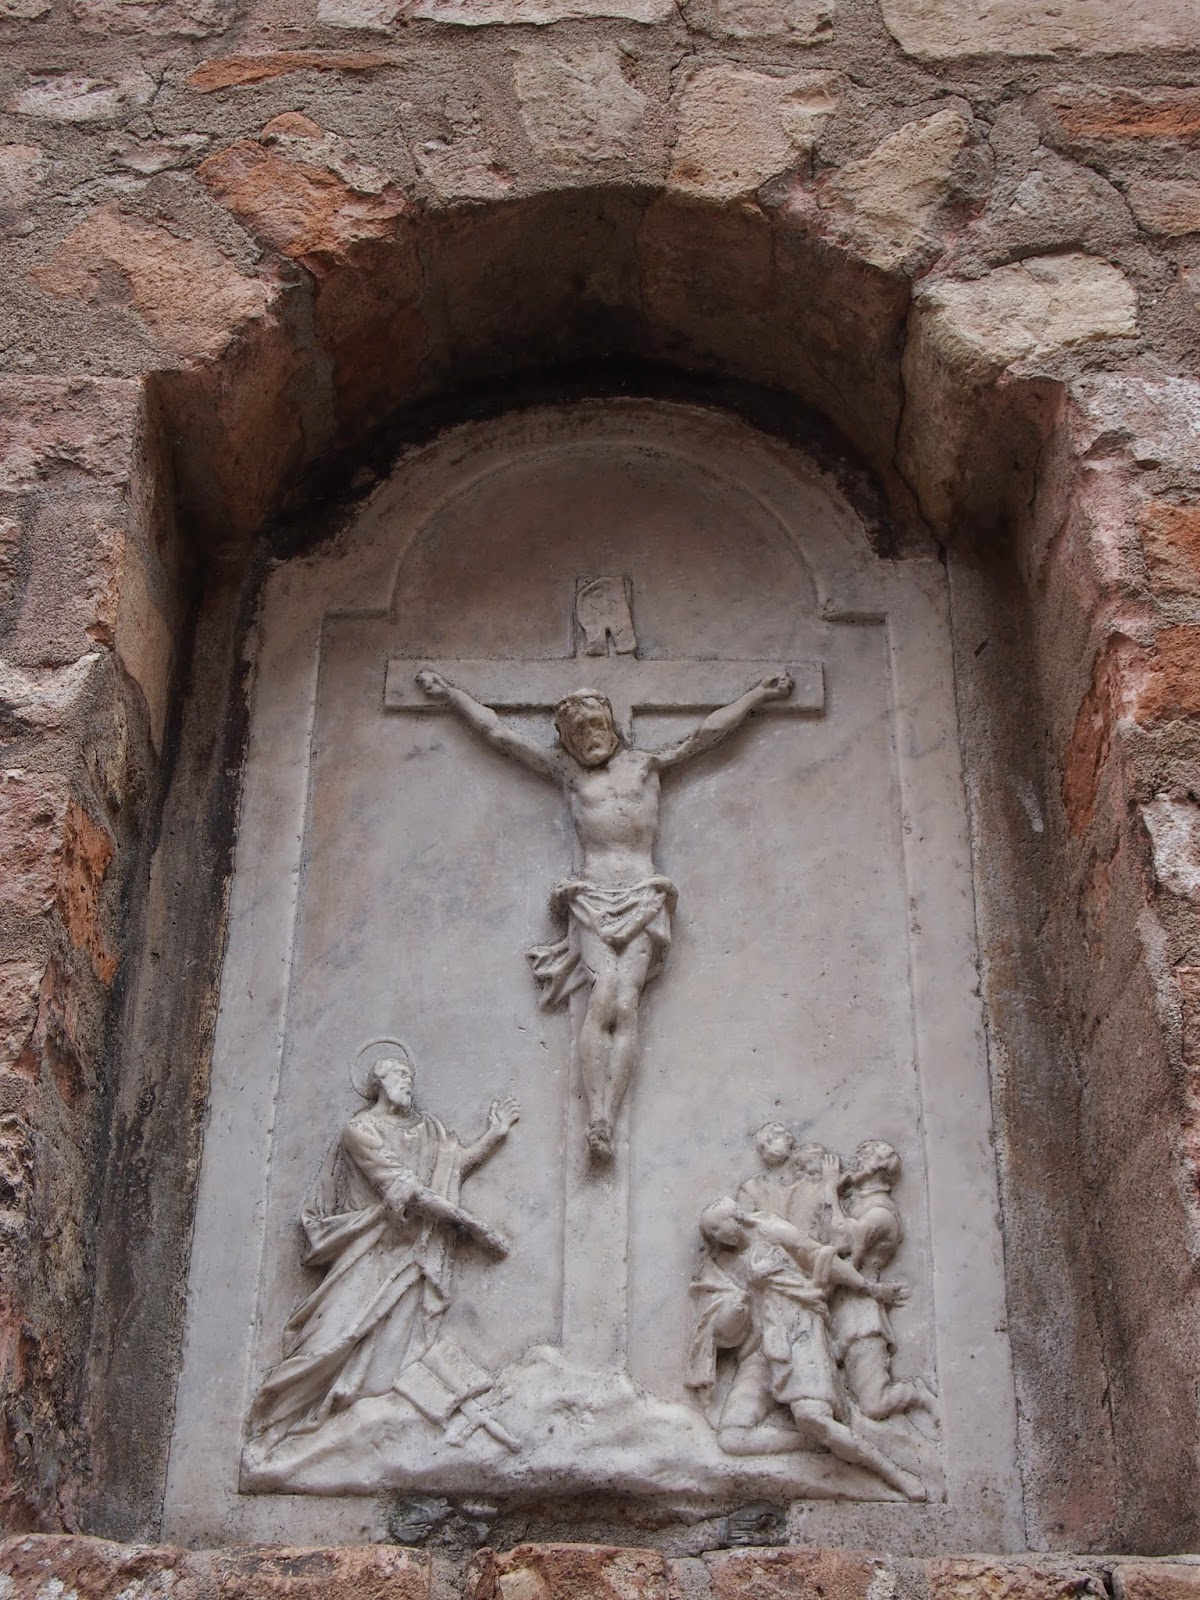 Jesus on the cross in Italy